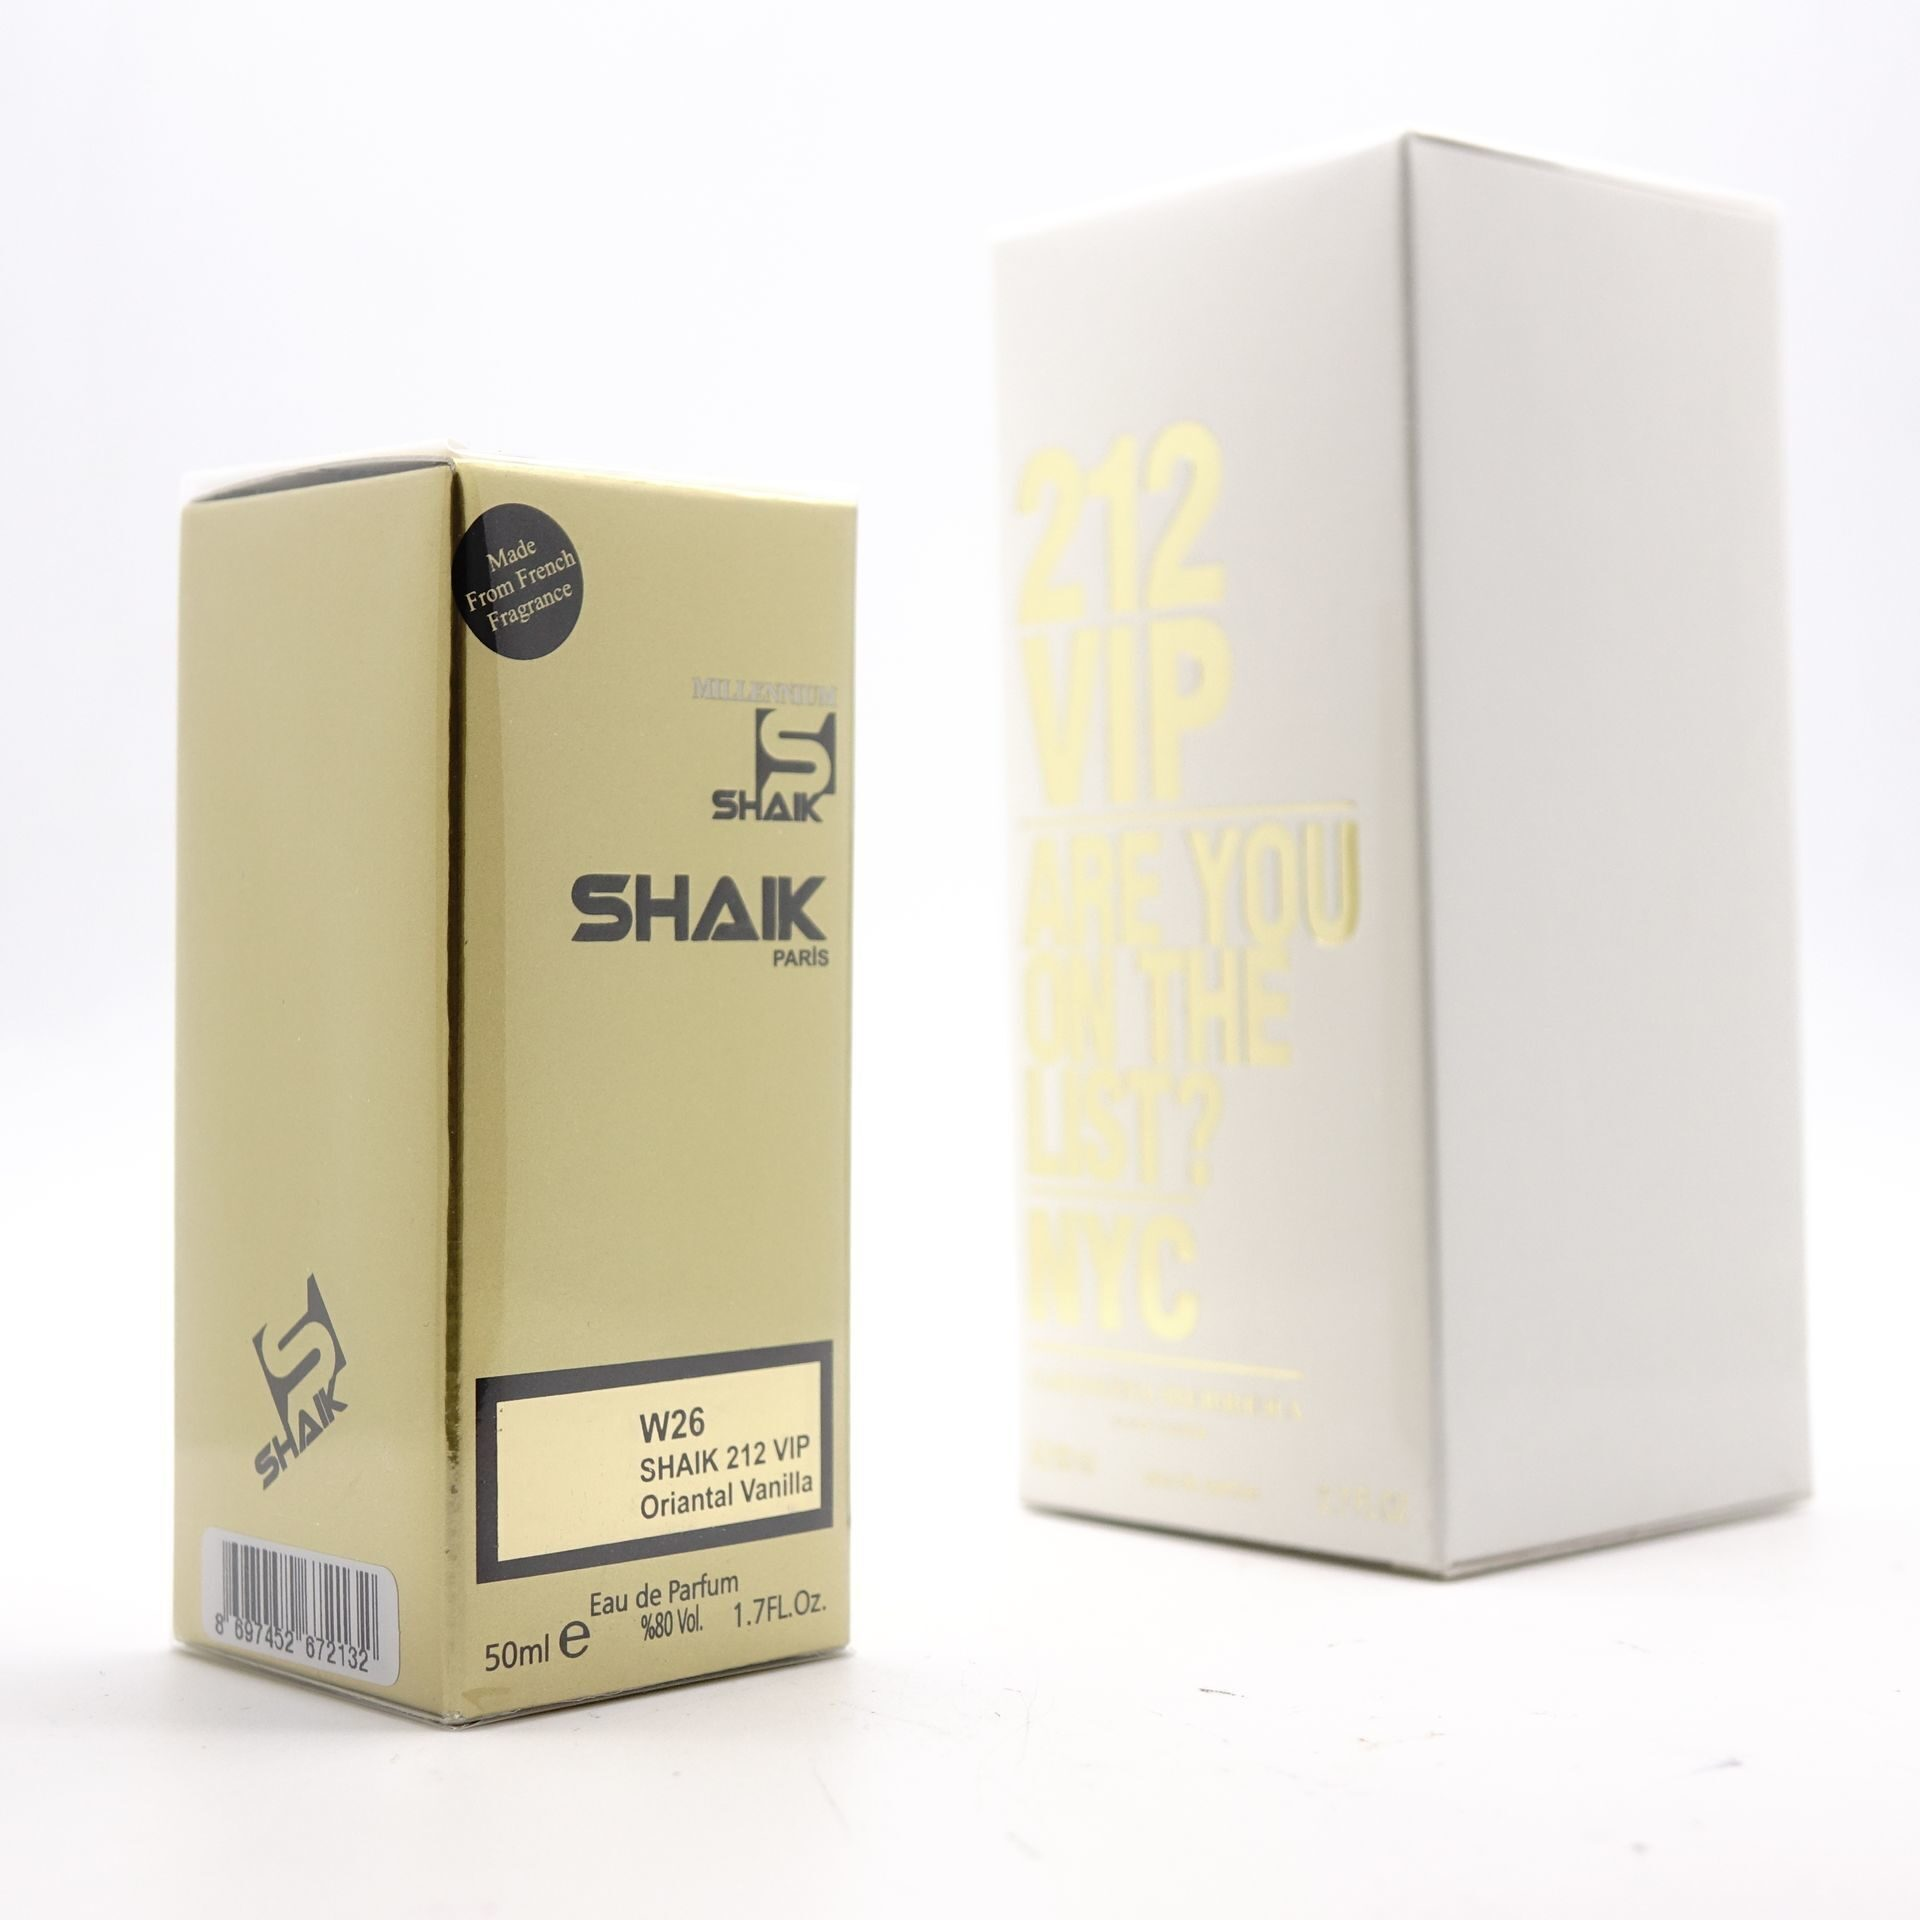 SHAIK W 26 (CH 212 VIP FOR WOMEN) 50ml